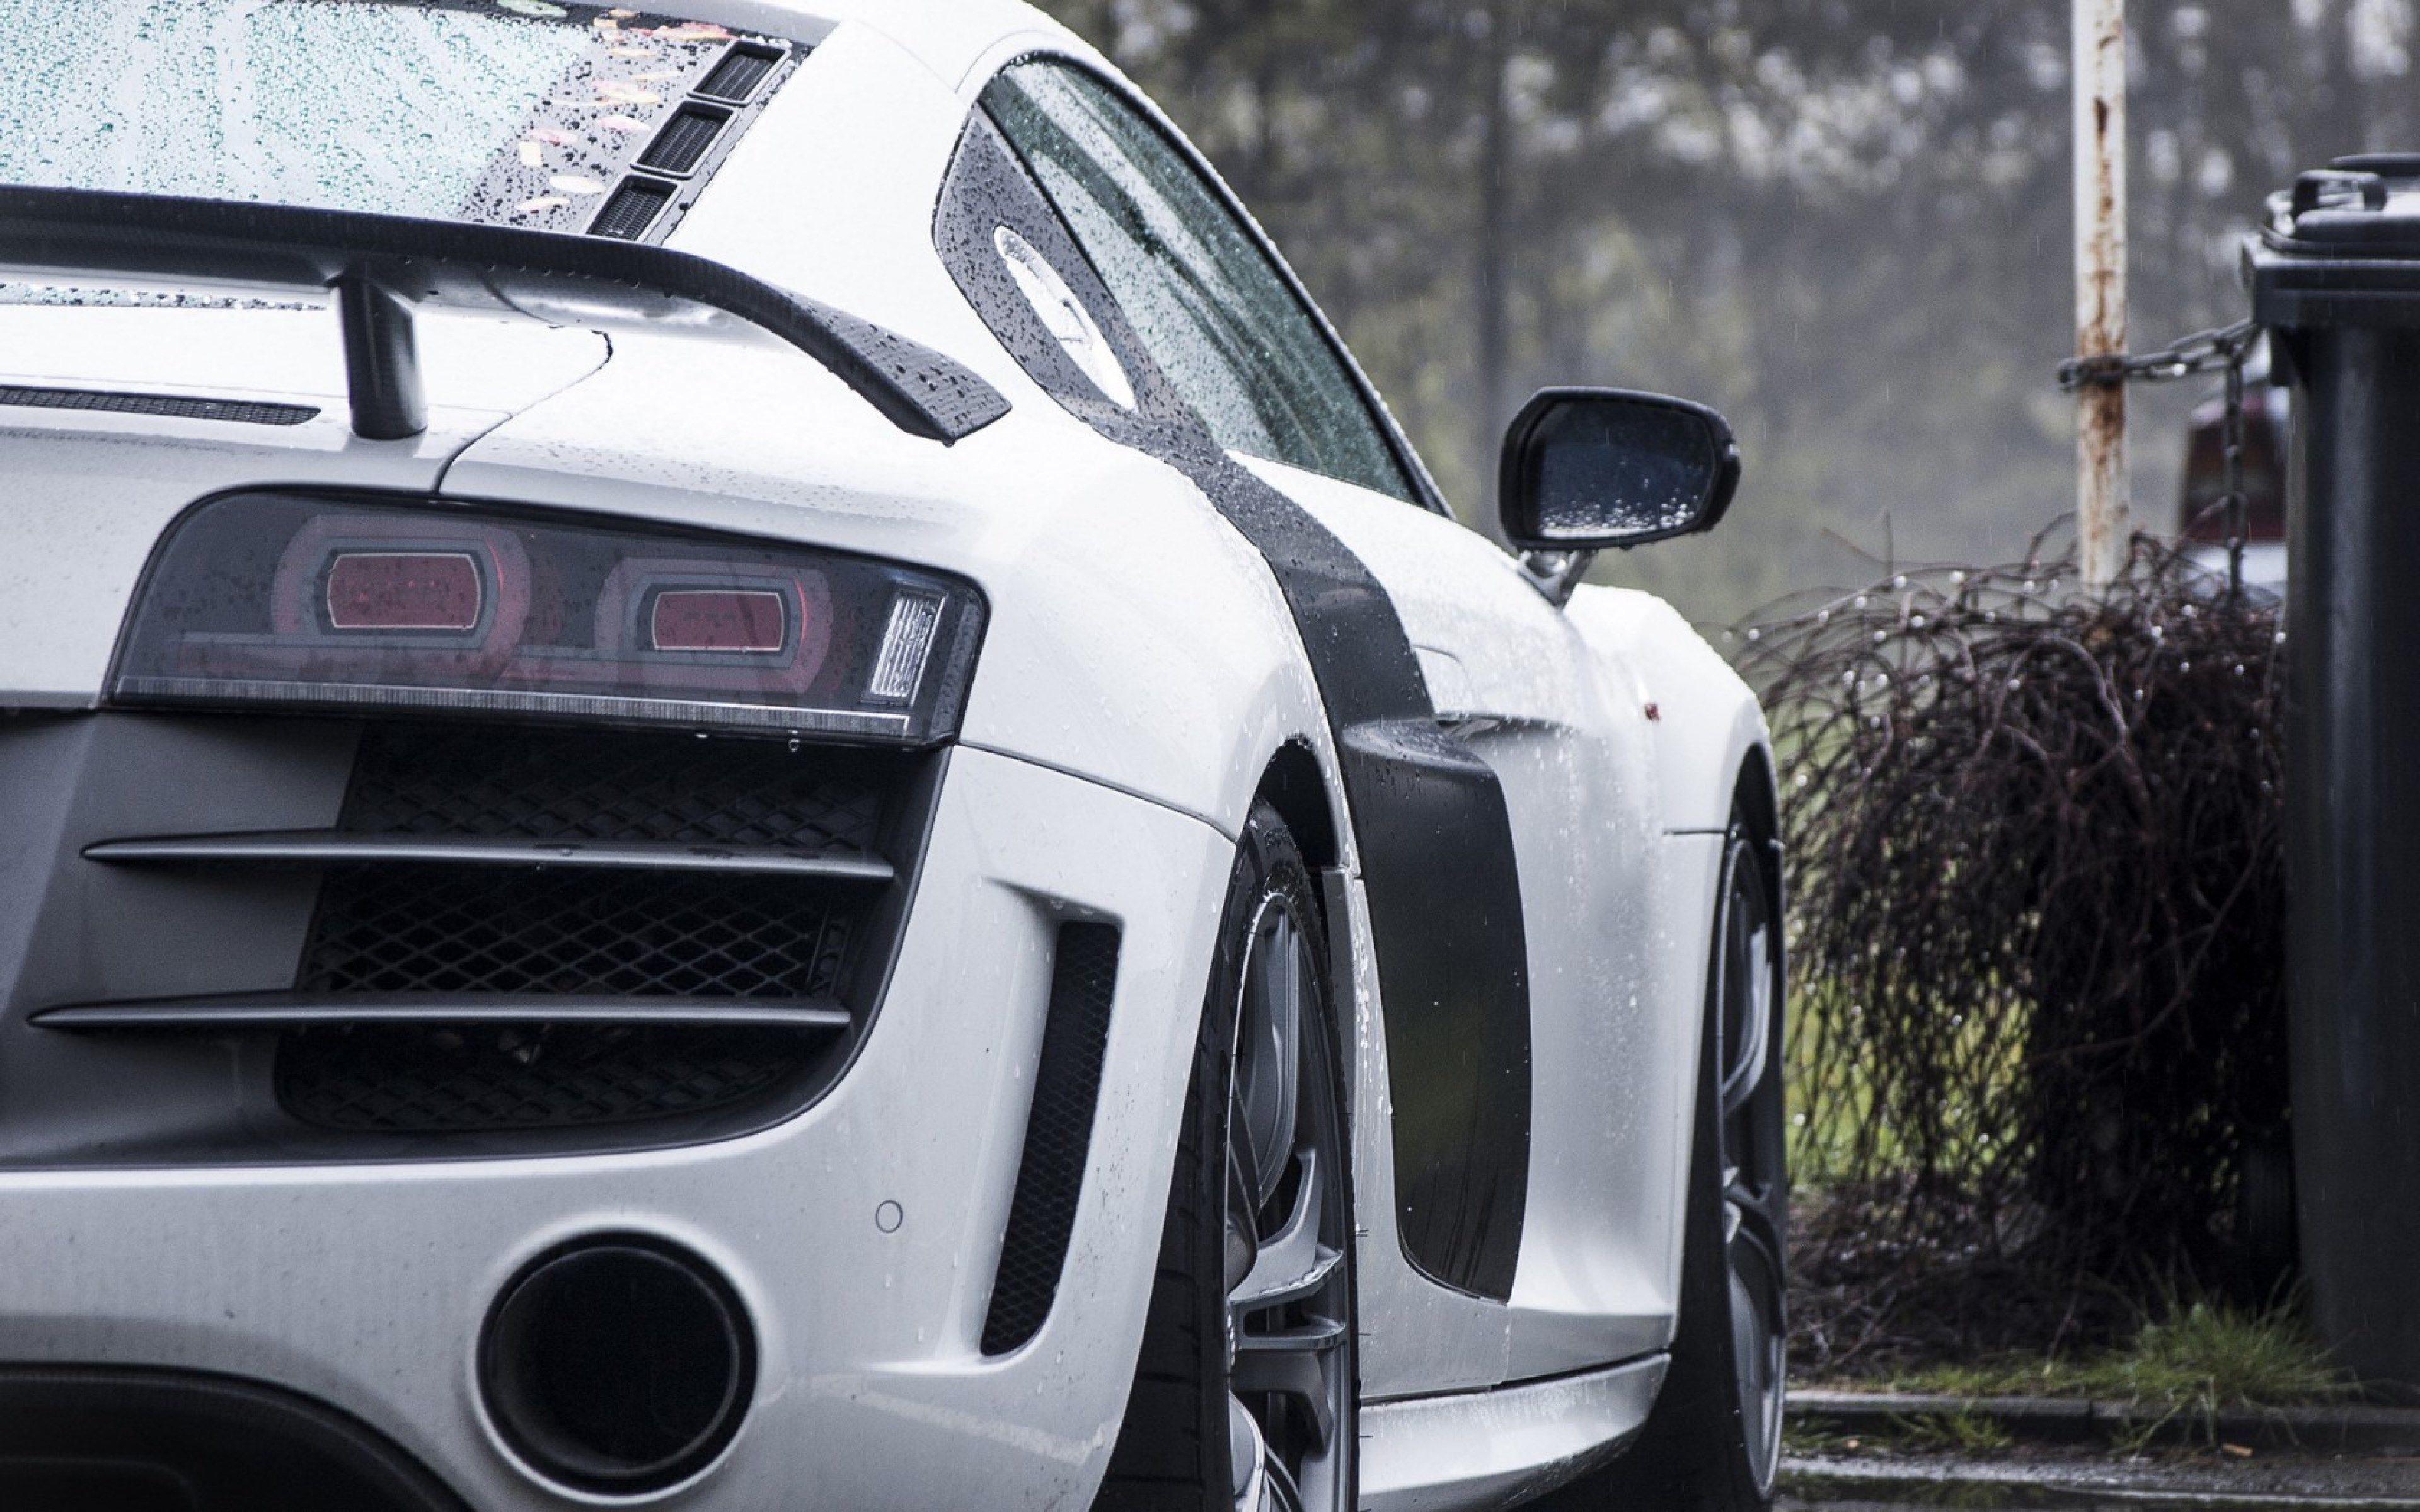 3840x2400 Px Wallpaper Desktop Audi R8 By Wainwright Williams For :  Pocketfullofgrace.com